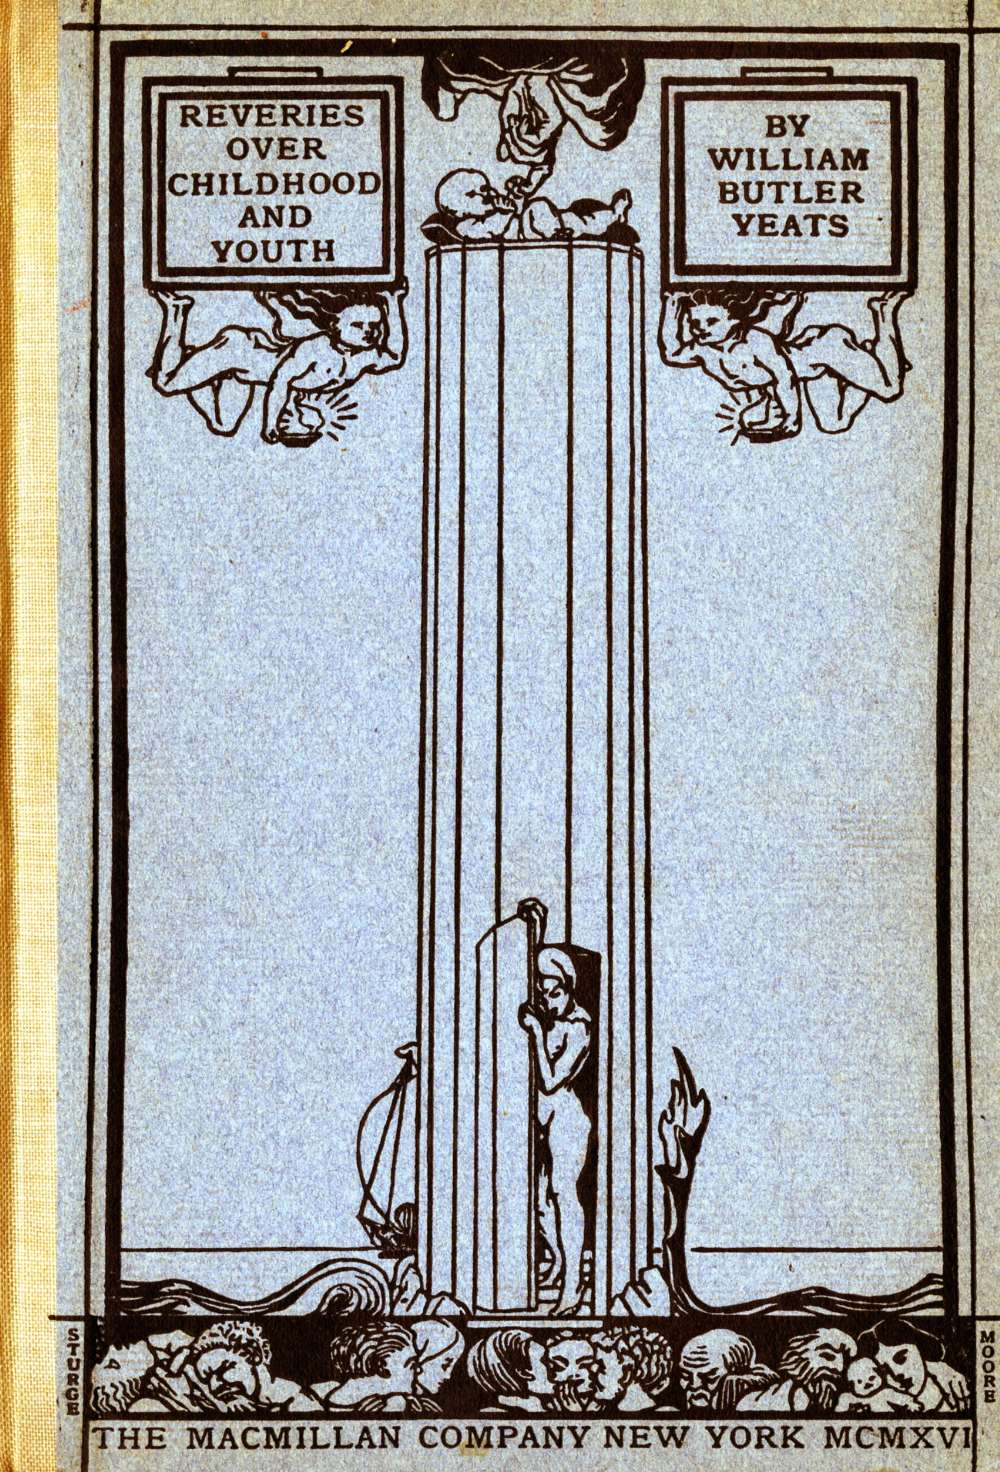 Yeats (W.B.) Reveries over Childhood and Youth, N.Y. 1916. First American Edn., illus.